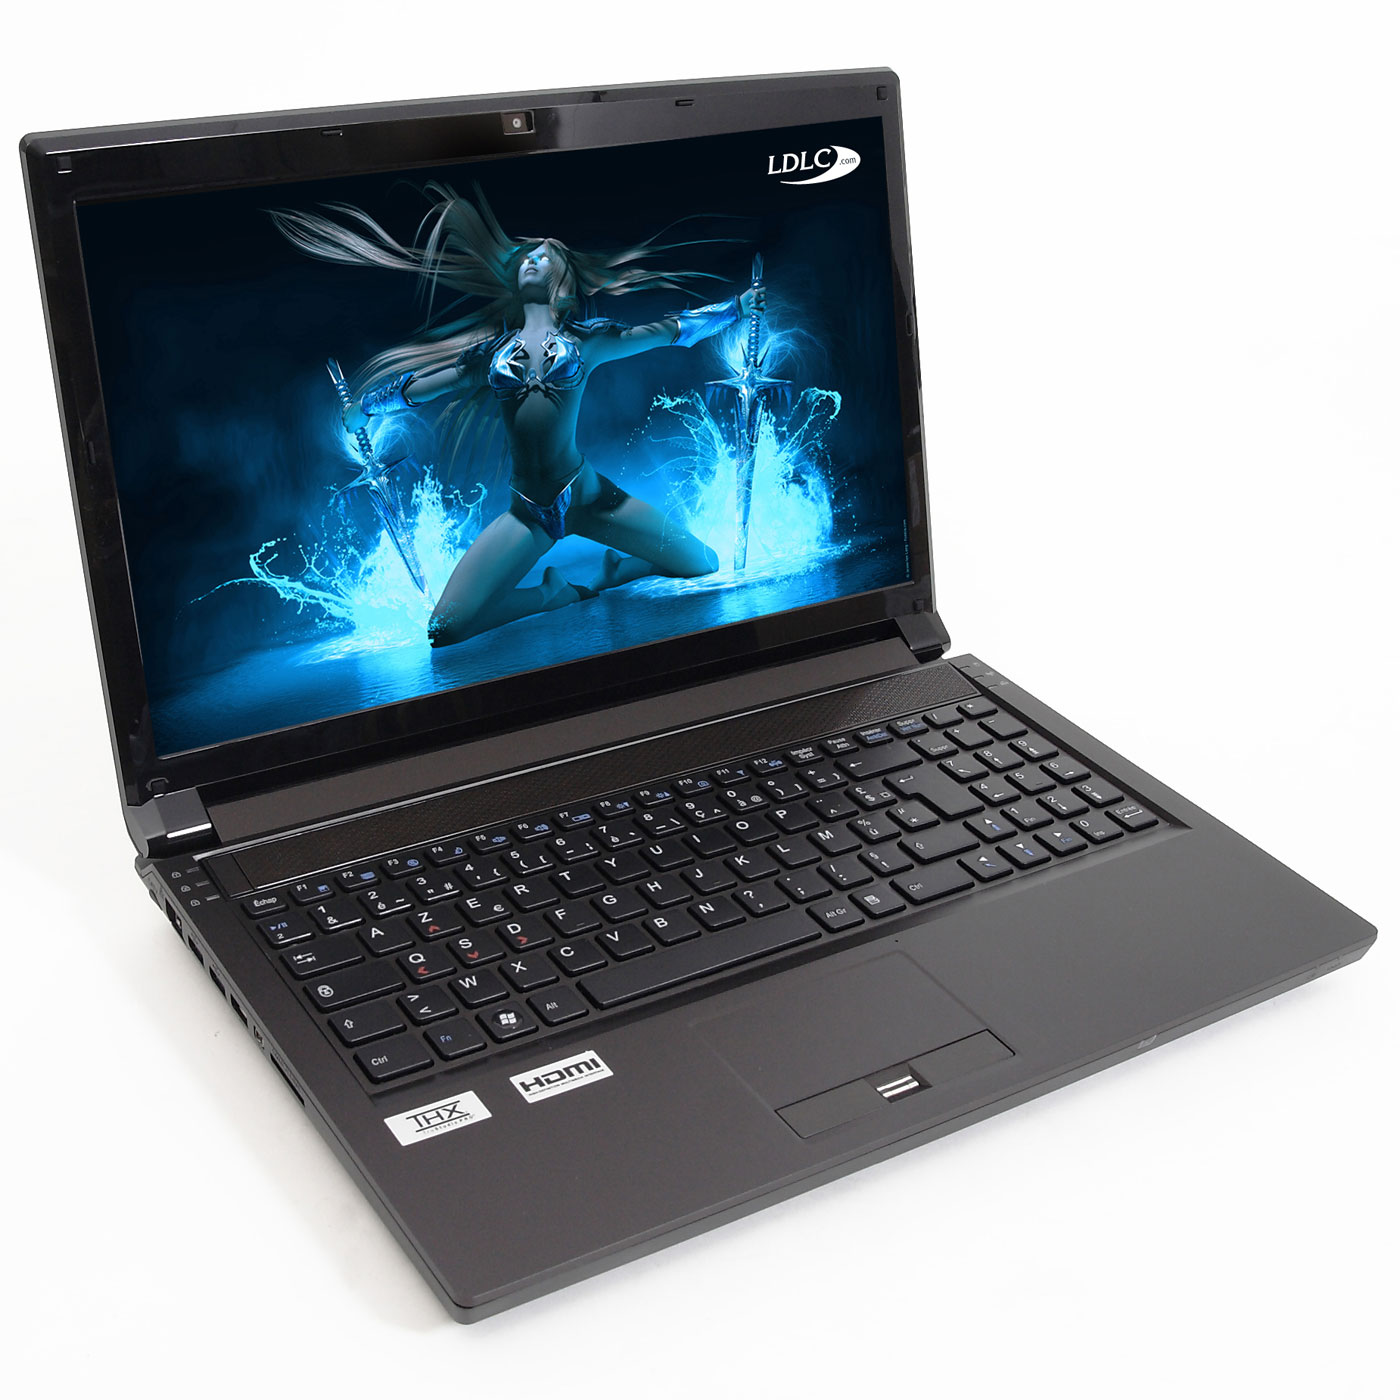 "PC portable LDLC Bellone GA1-I7-16-S2 Intel Core i7-2630QM 16 Go SSD 256 Go 15.6"" LED NVIDIA GeForce GTX 560M Graveur DVD Wi-Fi N/Bluetooth Webcam (sans OS)"